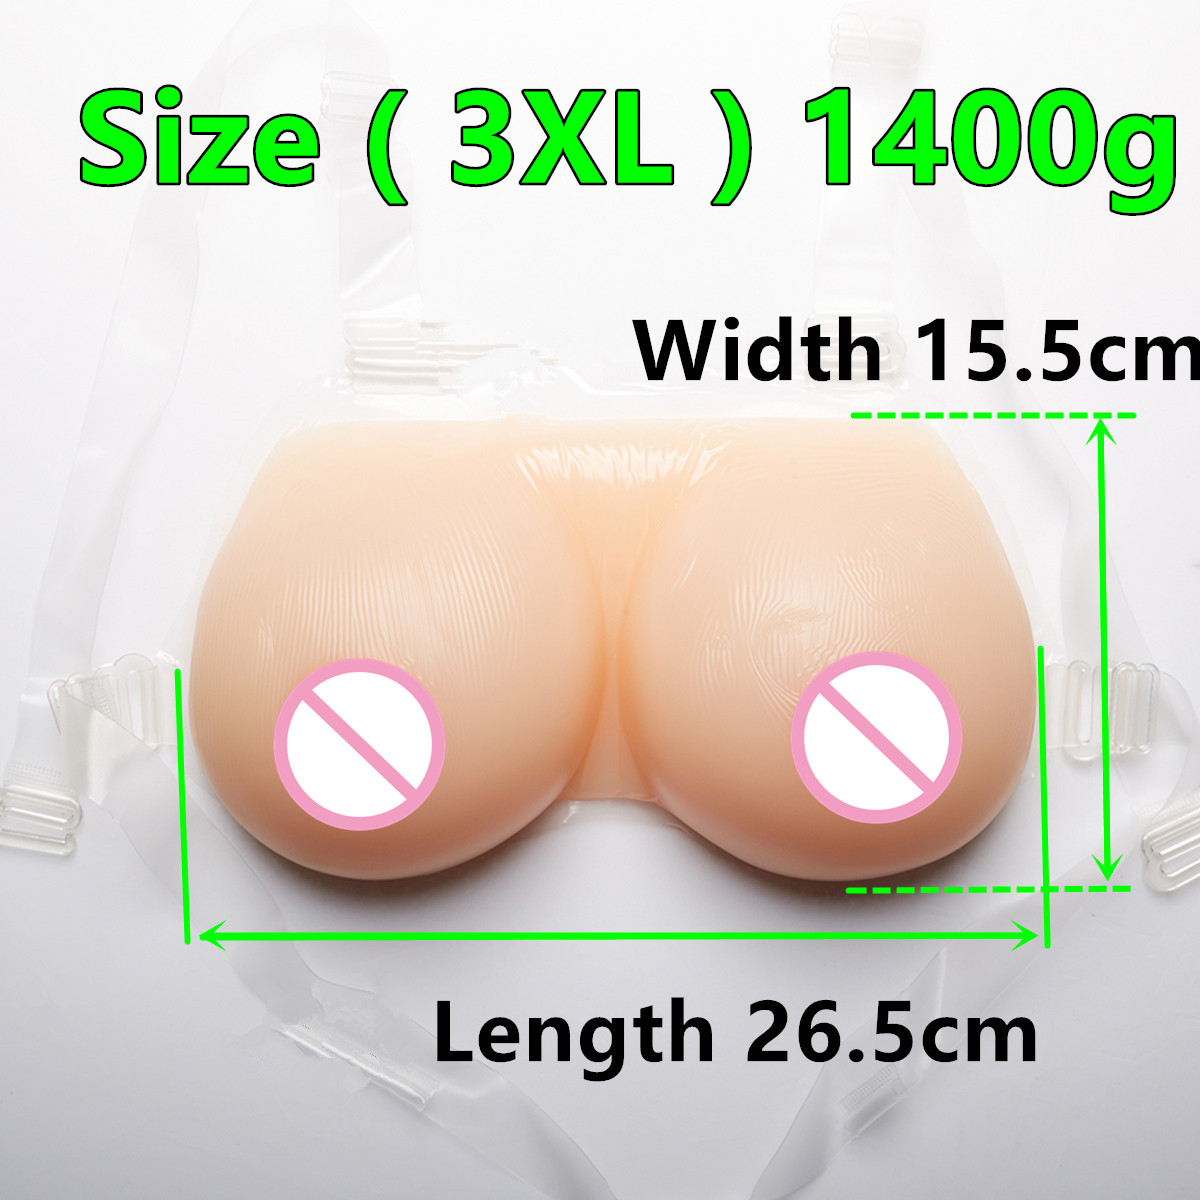 Artificial Silicone Fake Breast For Crossdressers And Transvestites 1400 g/pair D cup Silicone Breast forms Mastectomy 4600 g pair h hh silicone breast forms mastectomy artificial silicone fake breast for crossdressers and transvestites